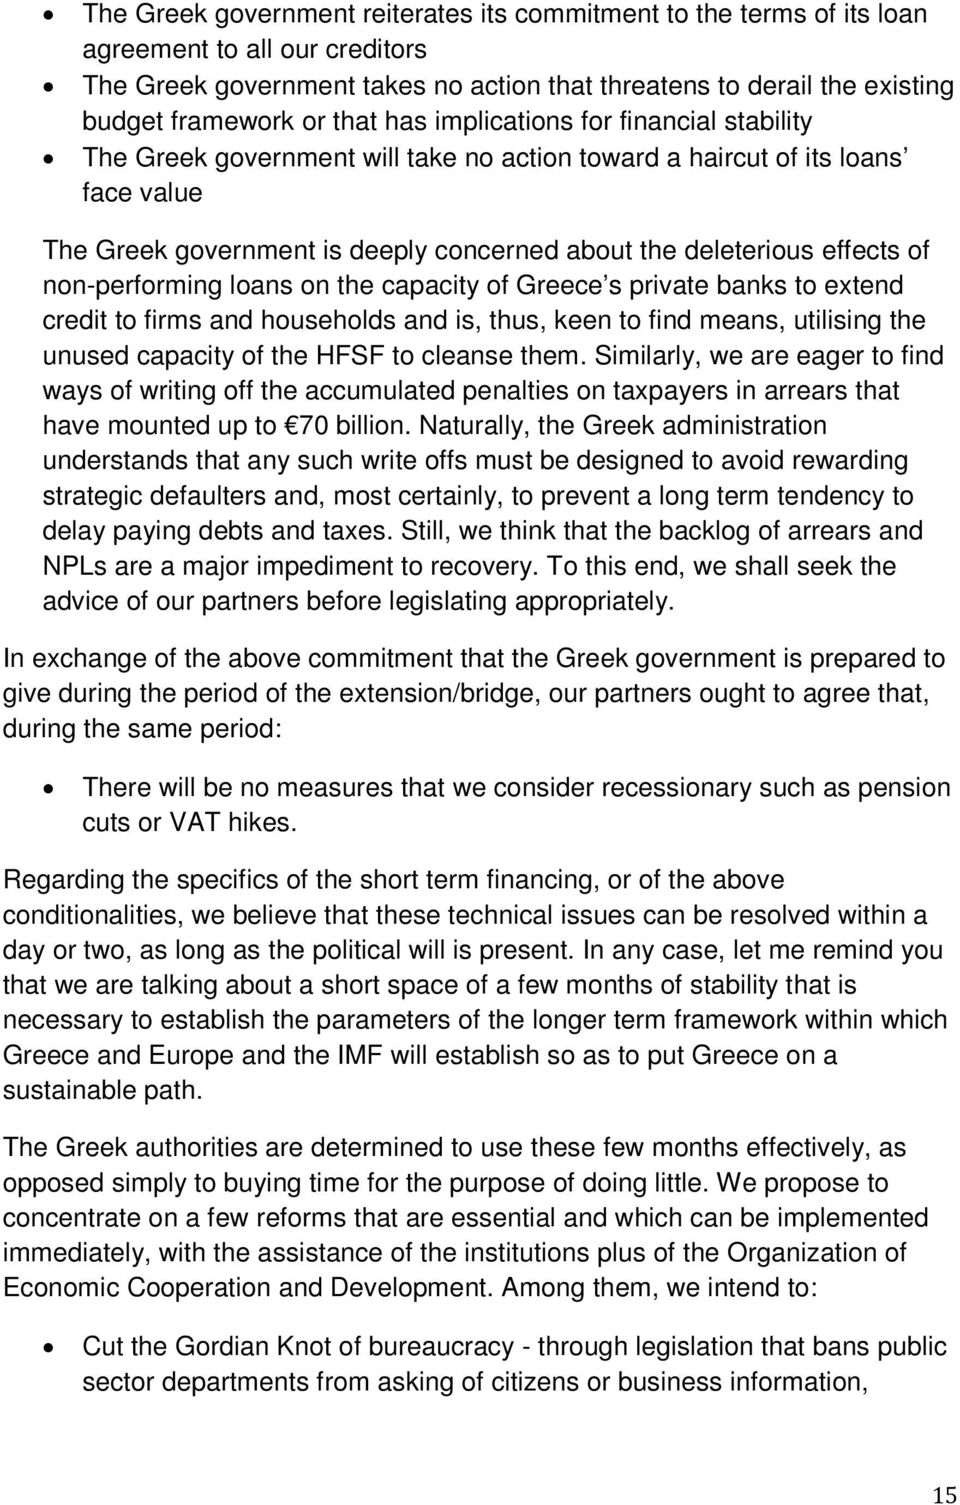 of non-performing loans on the capacity of Greece s private banks to extend credit to firms and households and is, thus, keen to find means, utilising the unused capacity of the HFSF to cleanse them.